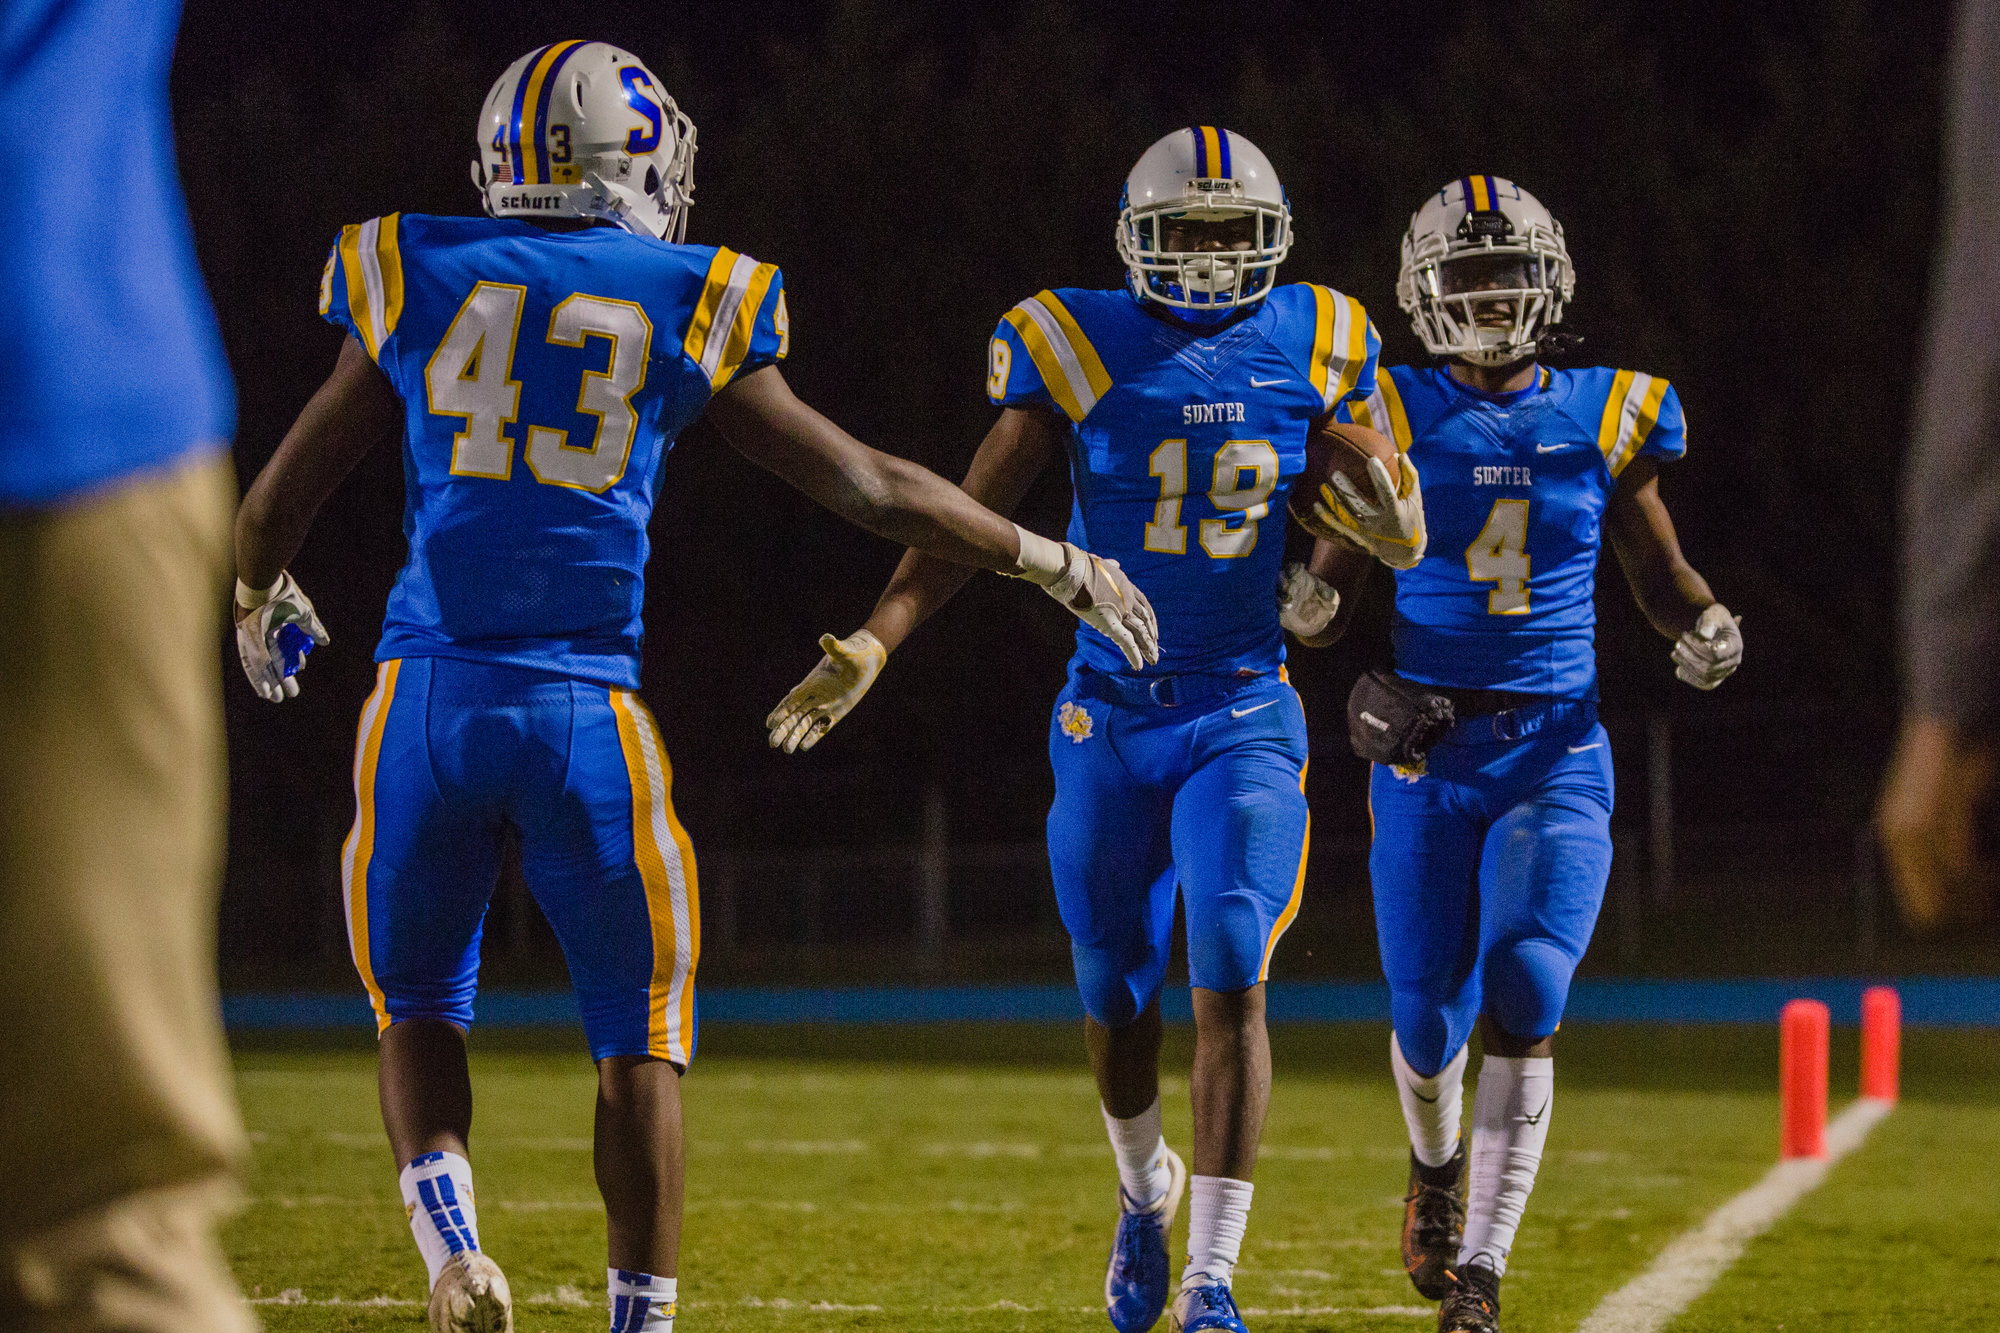 Sumter defensive back Zyeir Gamble (19) is congratulated by teammate Jabari Tiller after one of his two interceptions in the Gamecocks' 34-14 win over Irmo on Friday. Sumter plays host to Woodmont in the first round of the 5A state playoffs on Friday.